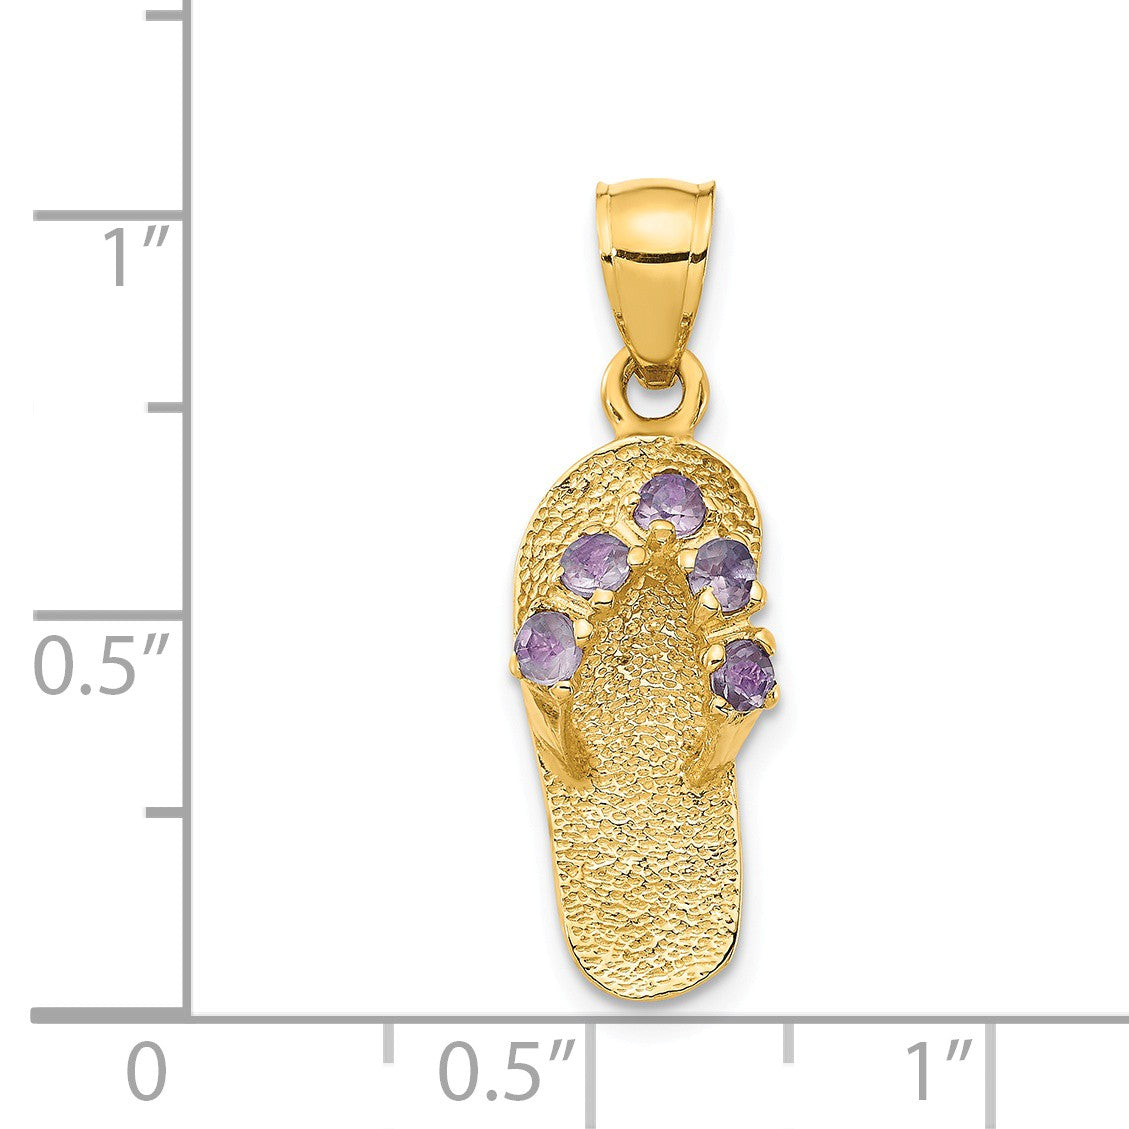 Alternate view of the 14k Yellow Gold June Cubic Zirconia Birthstone Flip Flop Pendant by The Black Bow Jewelry Co.